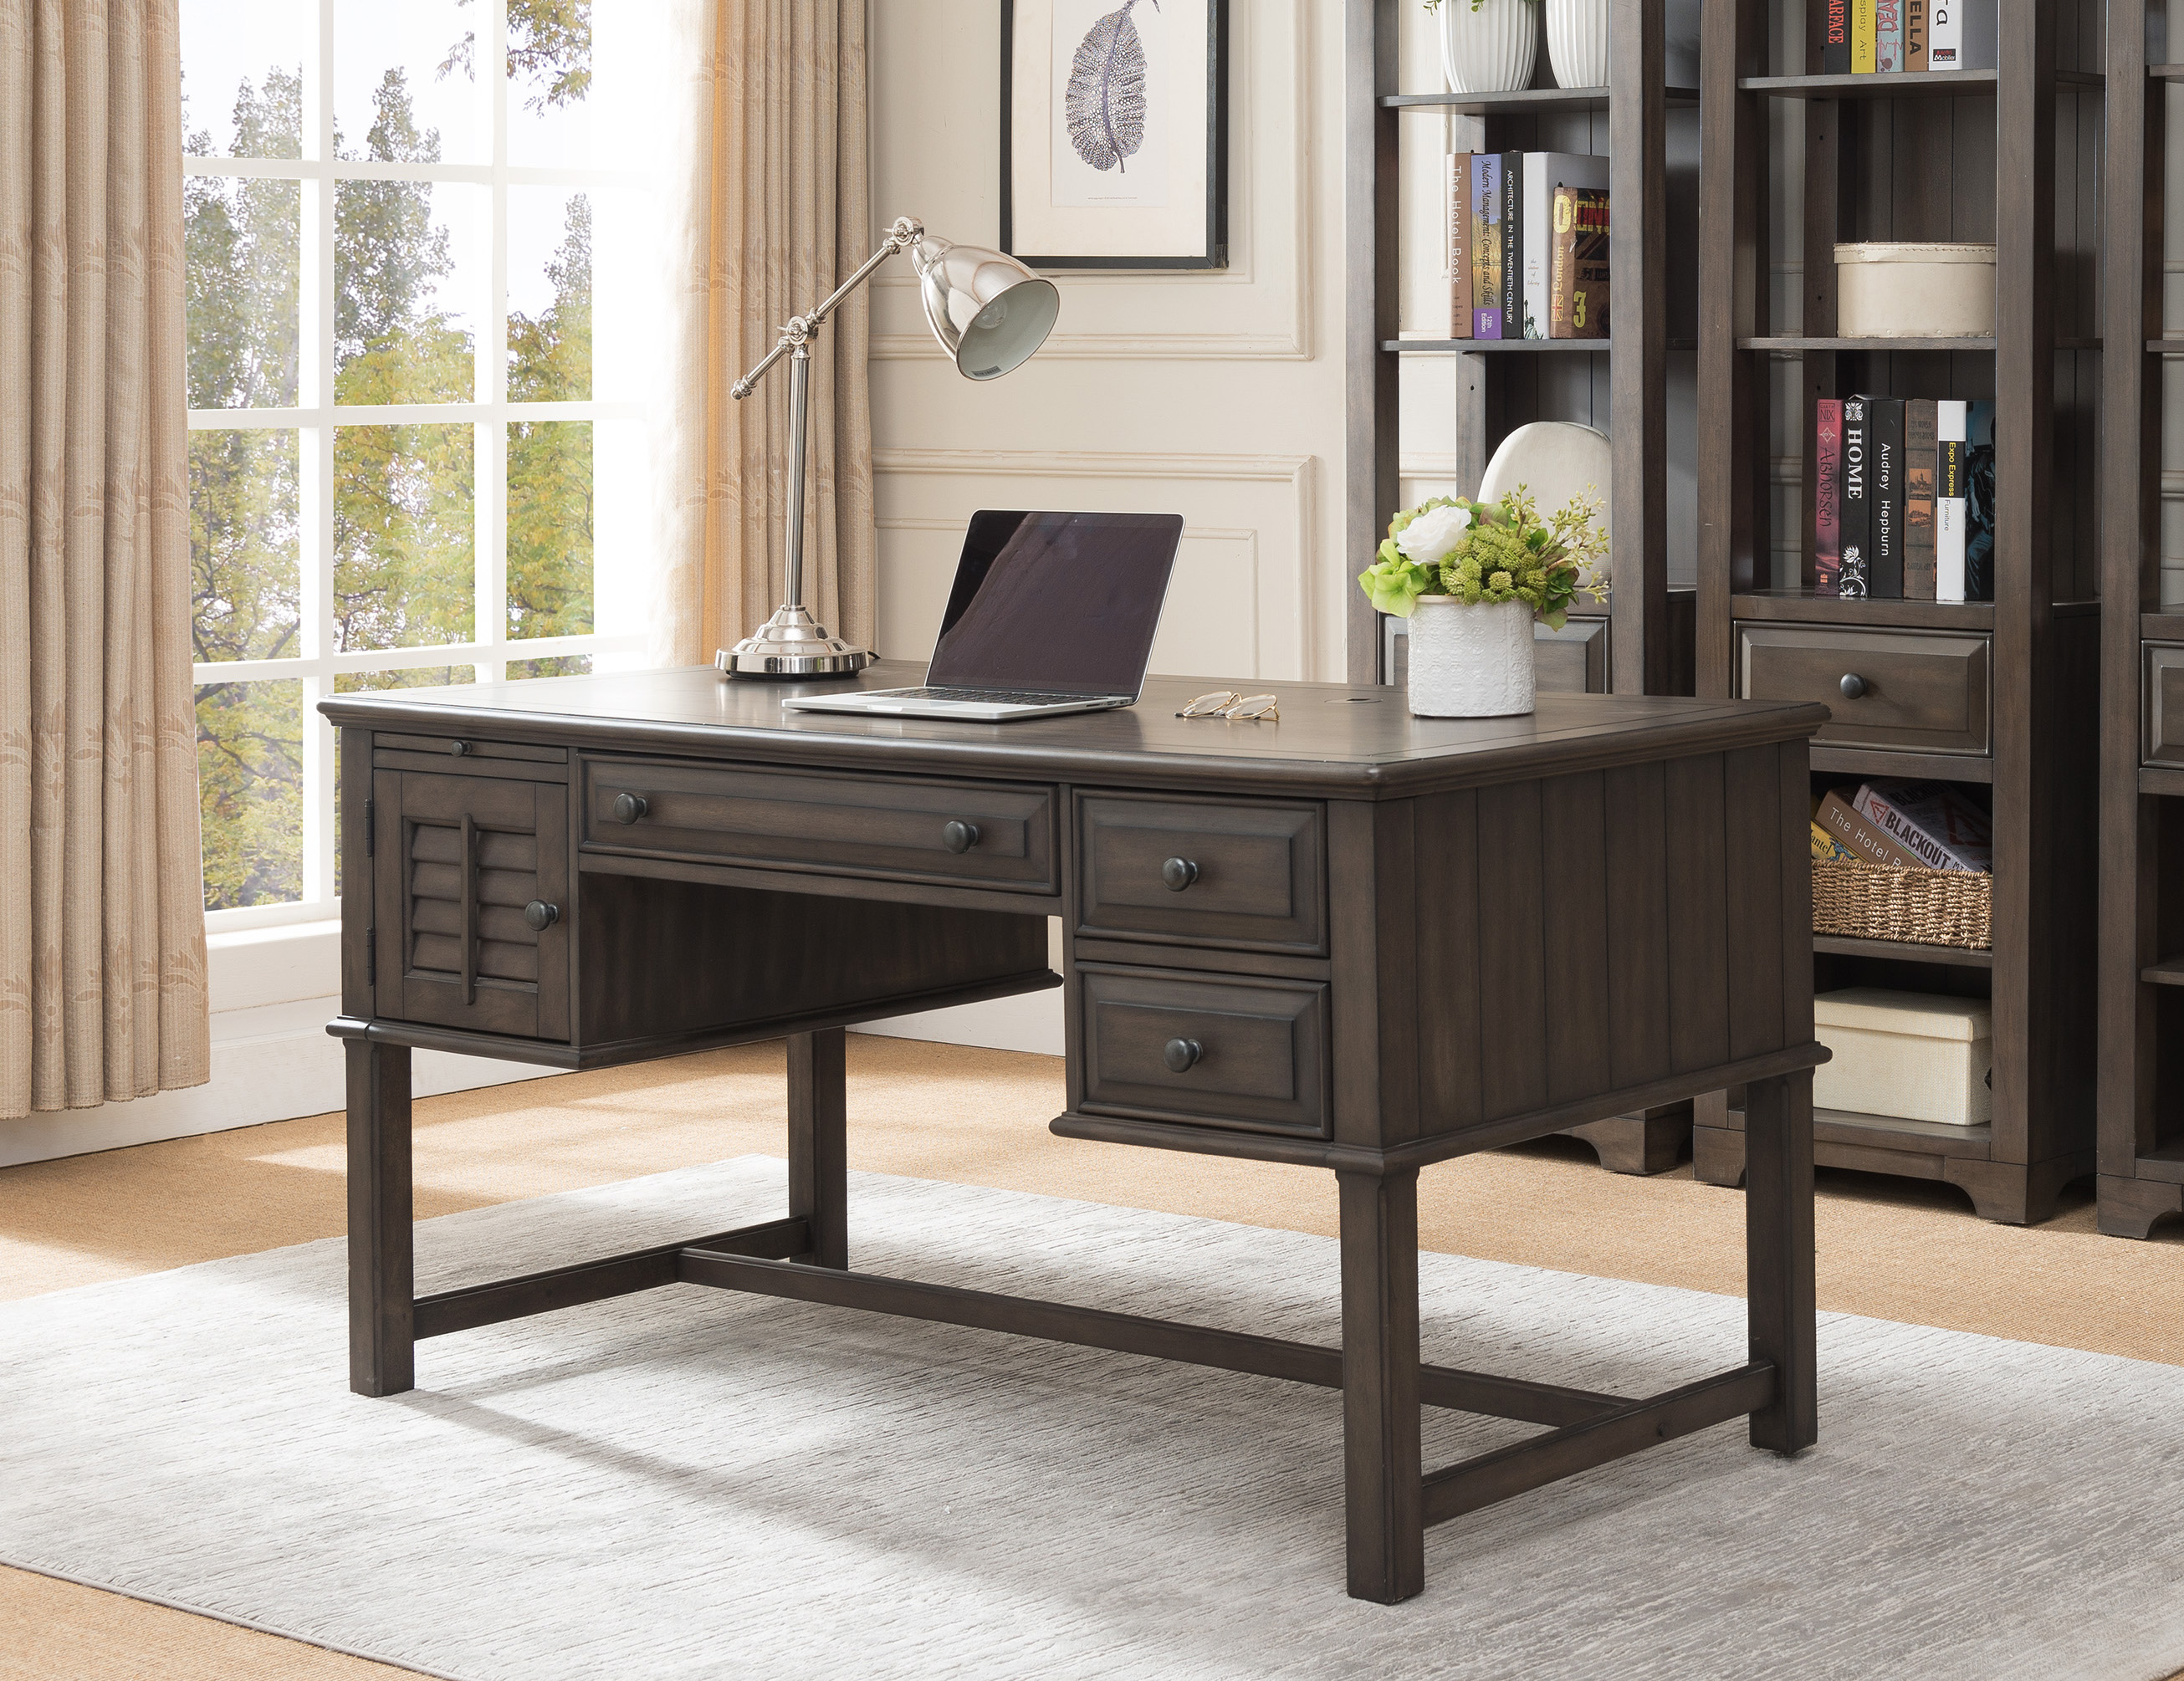 Merveilleux Alois Home U0026 Office Workstation Computer Desk, Distressed Gray Wood,  Rustic, With Storage Cabinets U0026 Drawers